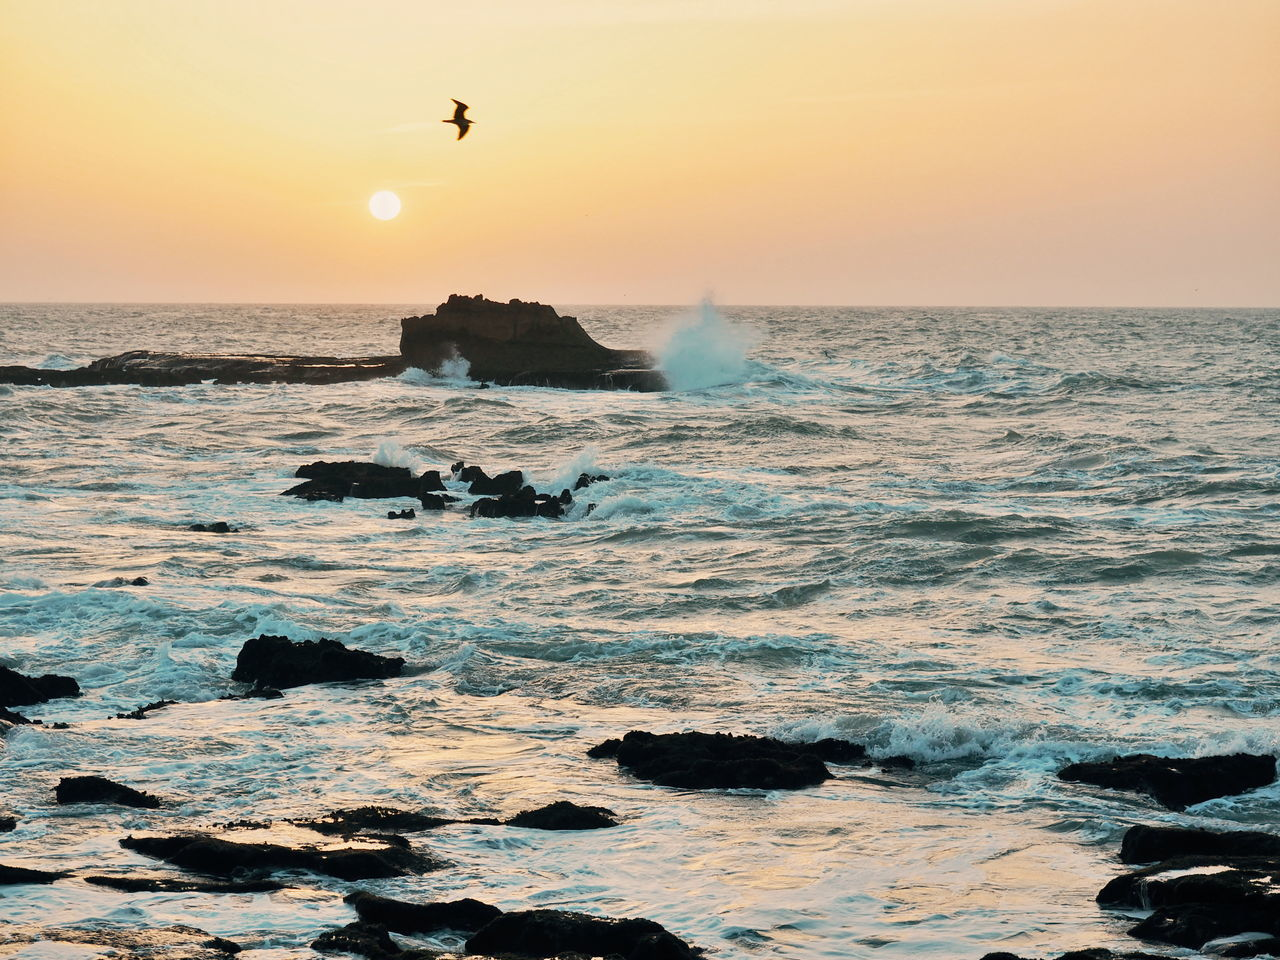 Sunset Sea Beach Bird Horizon Over Water Nature Animal Wildlife Silhouette Flying Water Horizon Sky Animal Outdoors Dramatic Sky Wave Beauty In Nature Animal Themes No People Beach Sunset Seagull SEAGULL IN FLIGHT Seagulls And Sea Travel Destinations Morocco